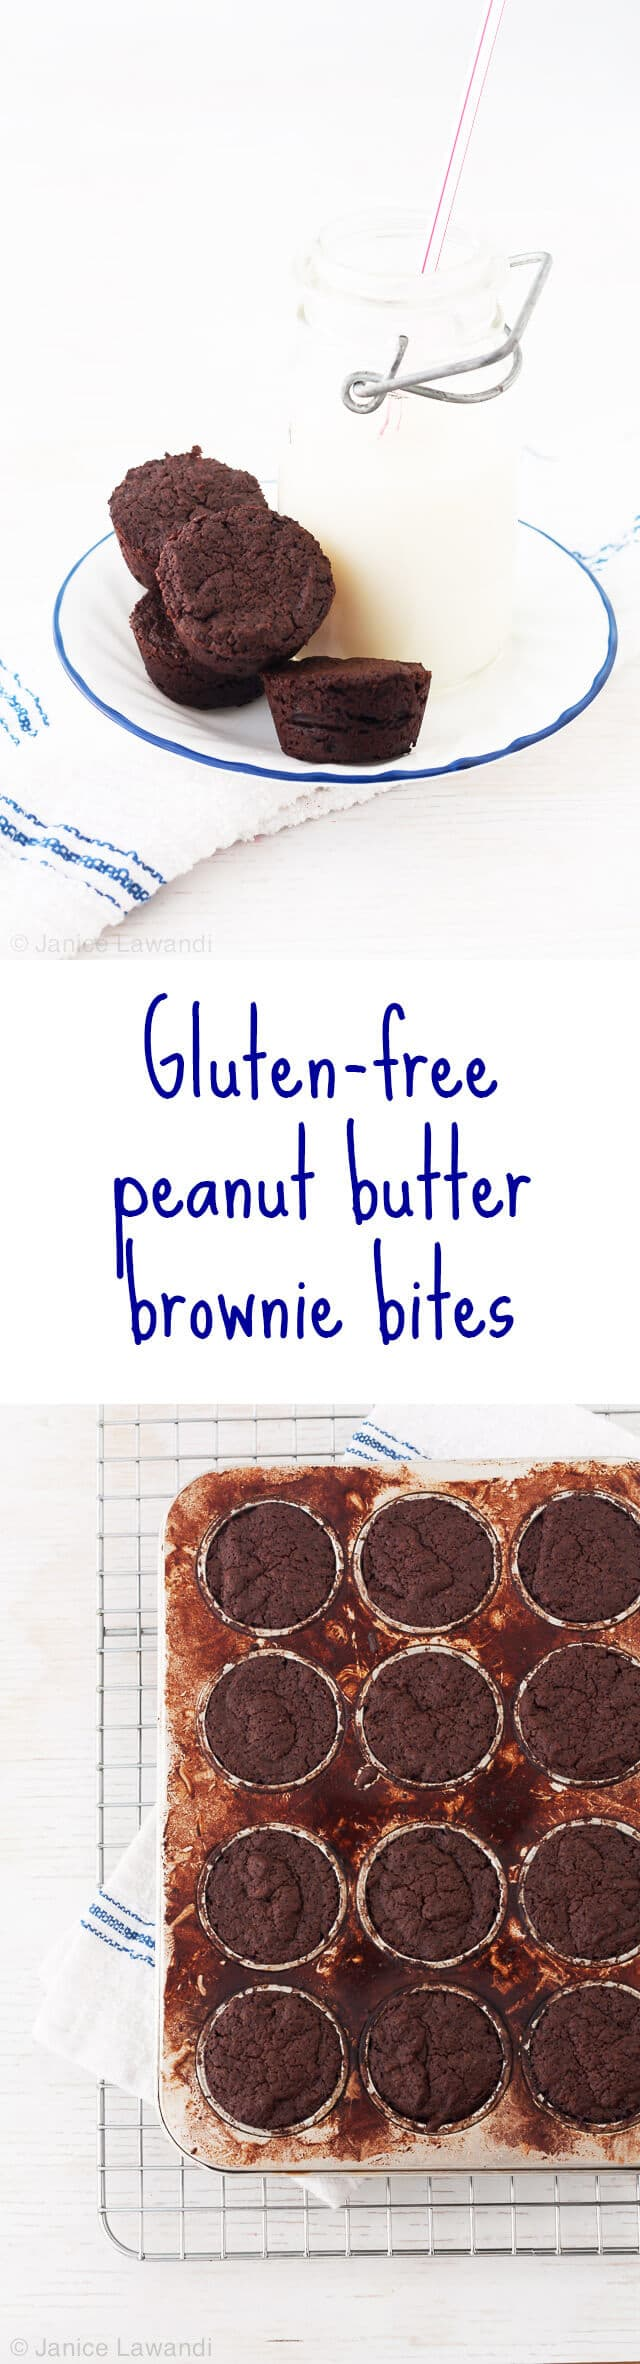 Gluten-free peanut butter brownie bites recipe baked in a mini muffin pan